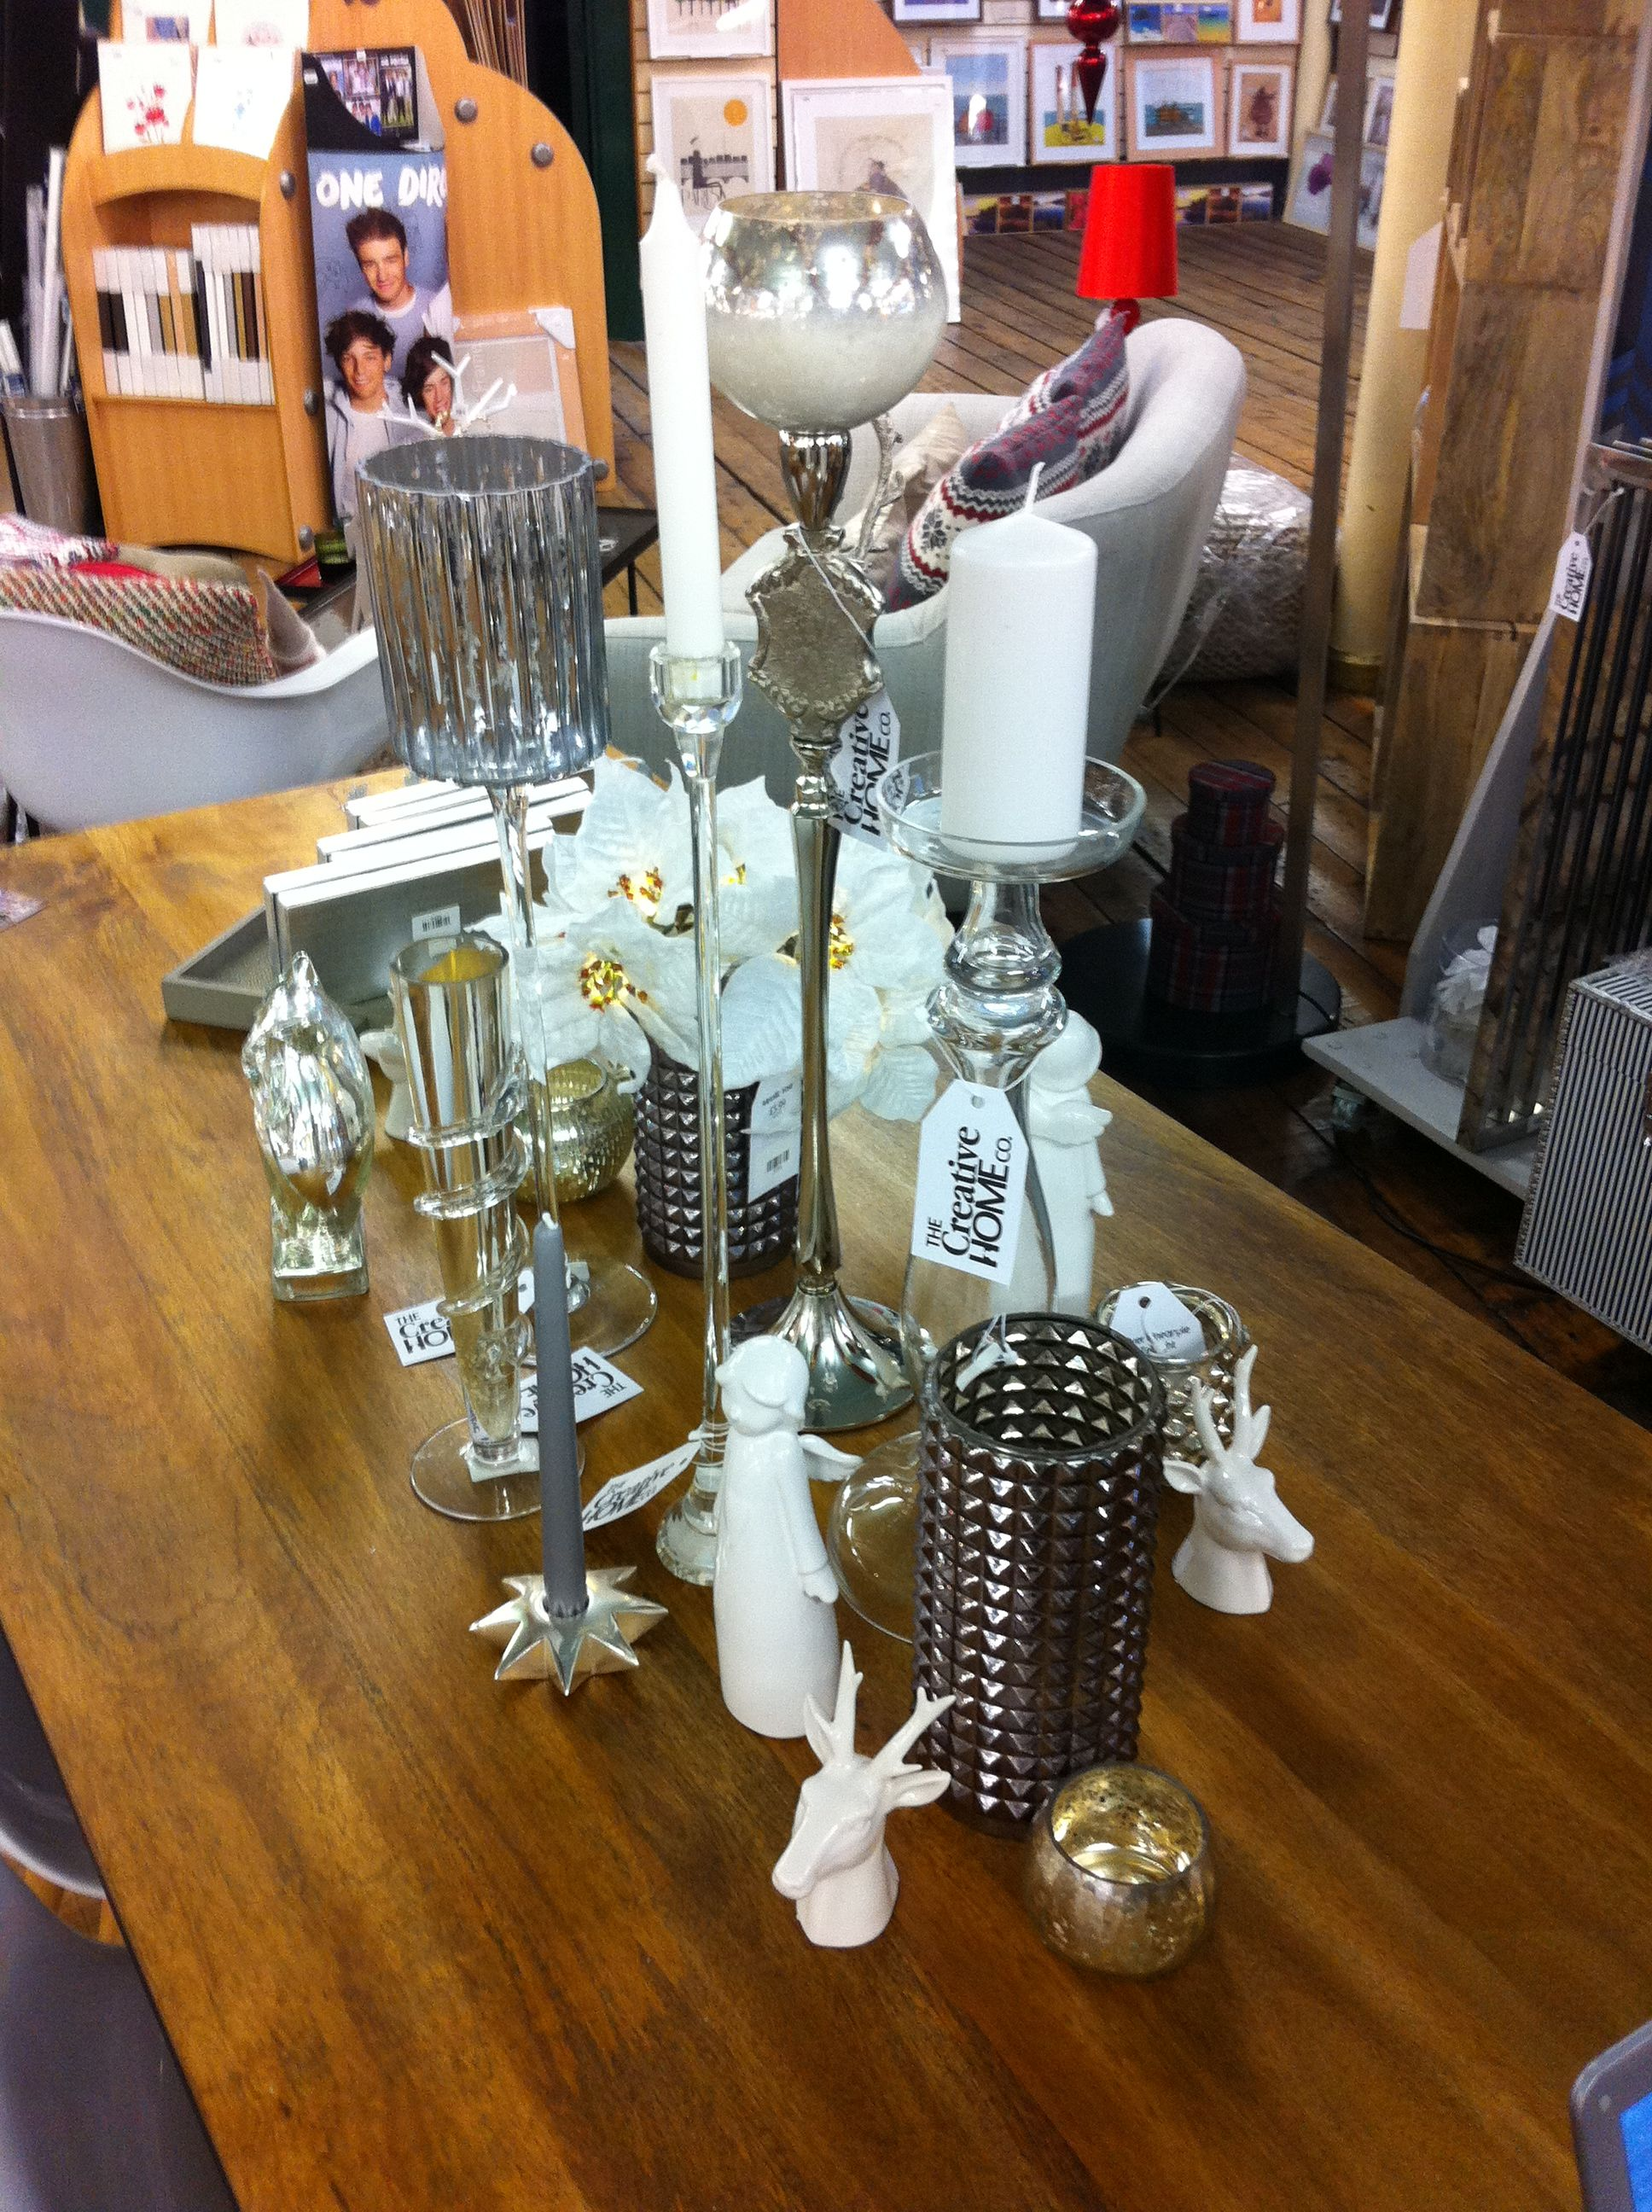 Christmas Table Displays From The Creative Home Co At Botany Bay